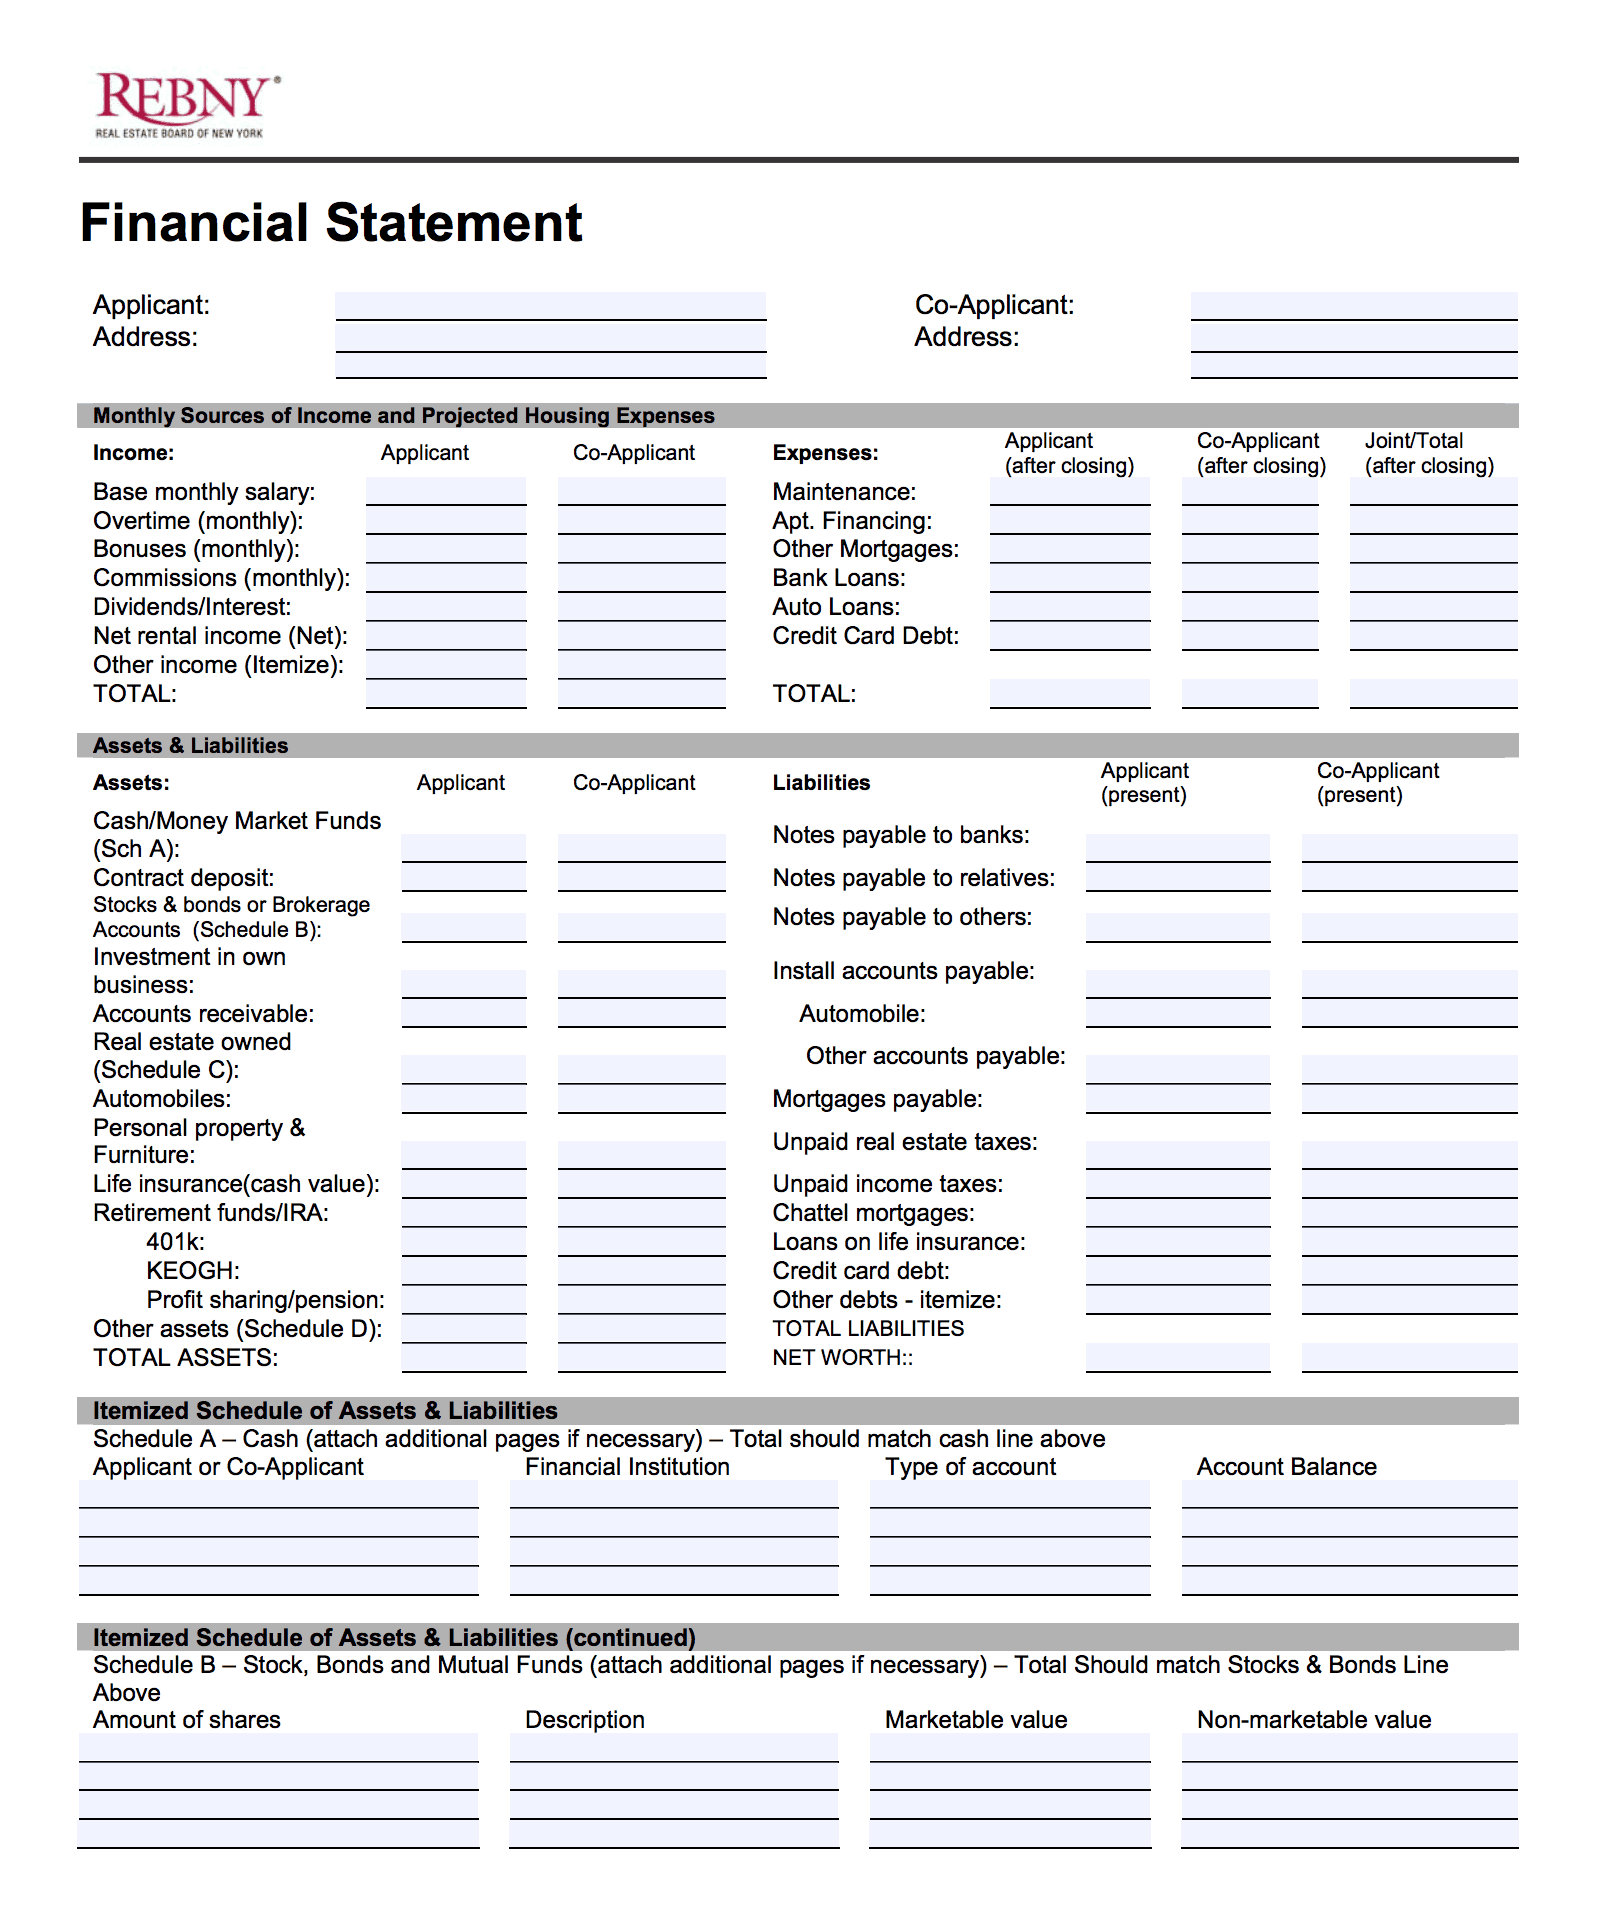 rebny financial statement instructions elika real estate